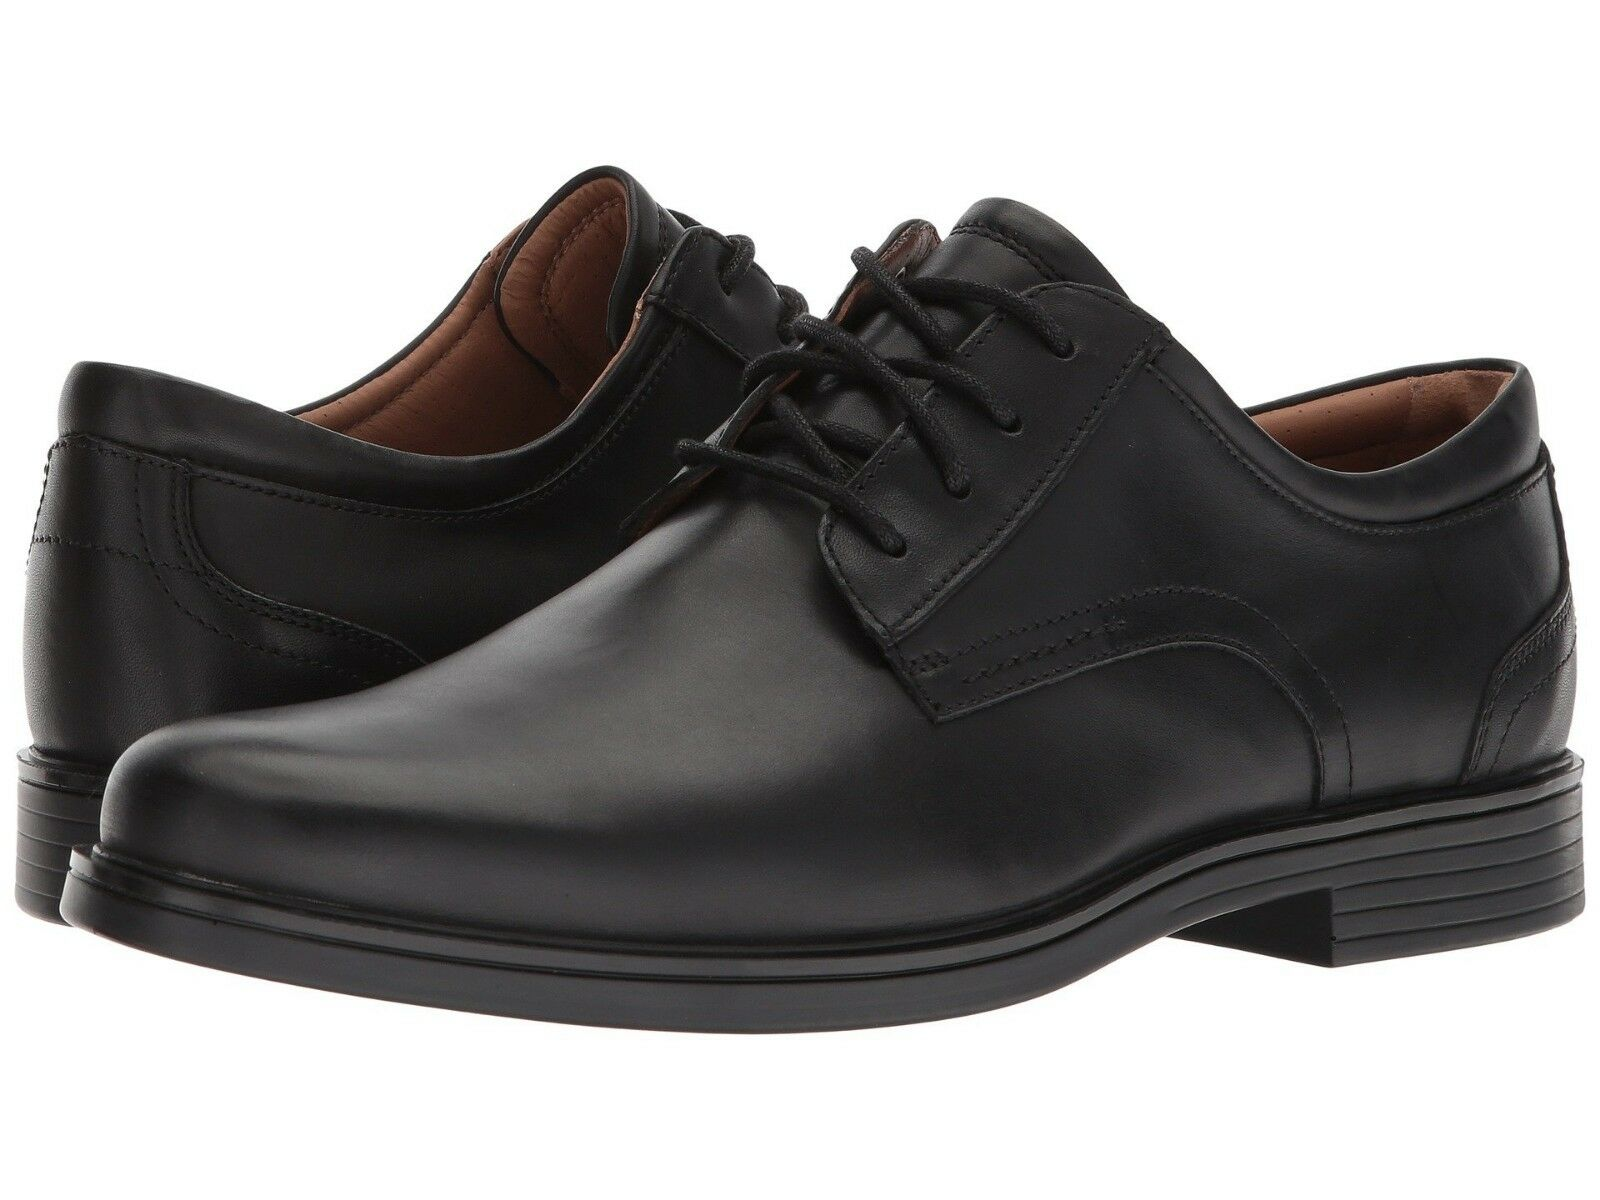 Clarks UN ALDRIC LACE Mens Black Leather 32677 Lace Up Comfort Oxford shoes